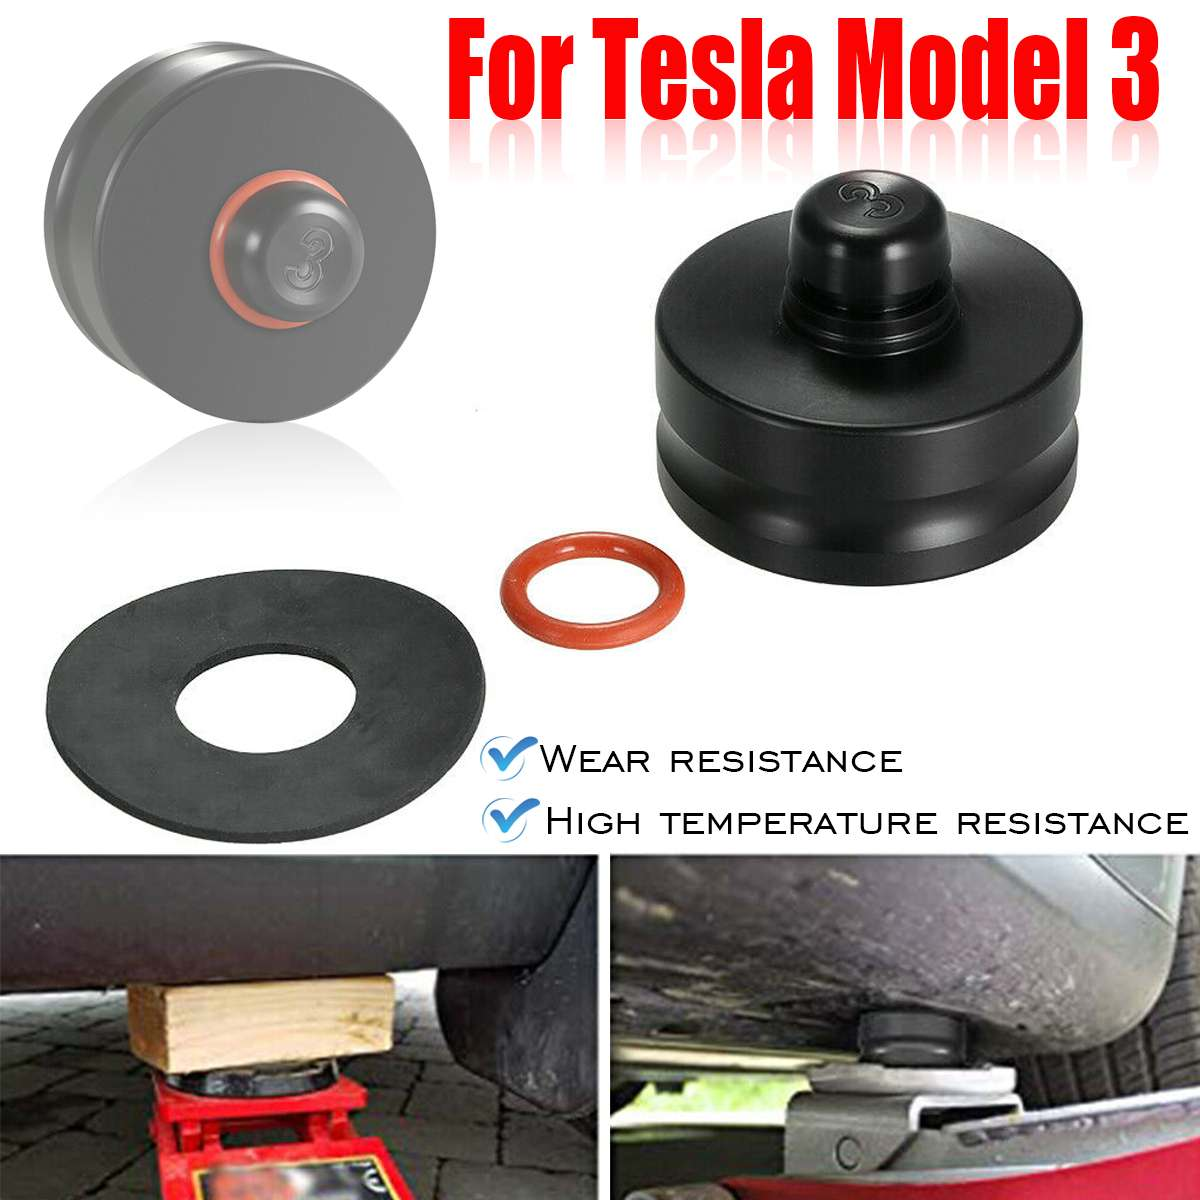 1Pcs Jack Lift Point Pad Adapter Jack Pad Tool Chassis Dedicated Car Styling Tools For Tesla Model 3 All Models